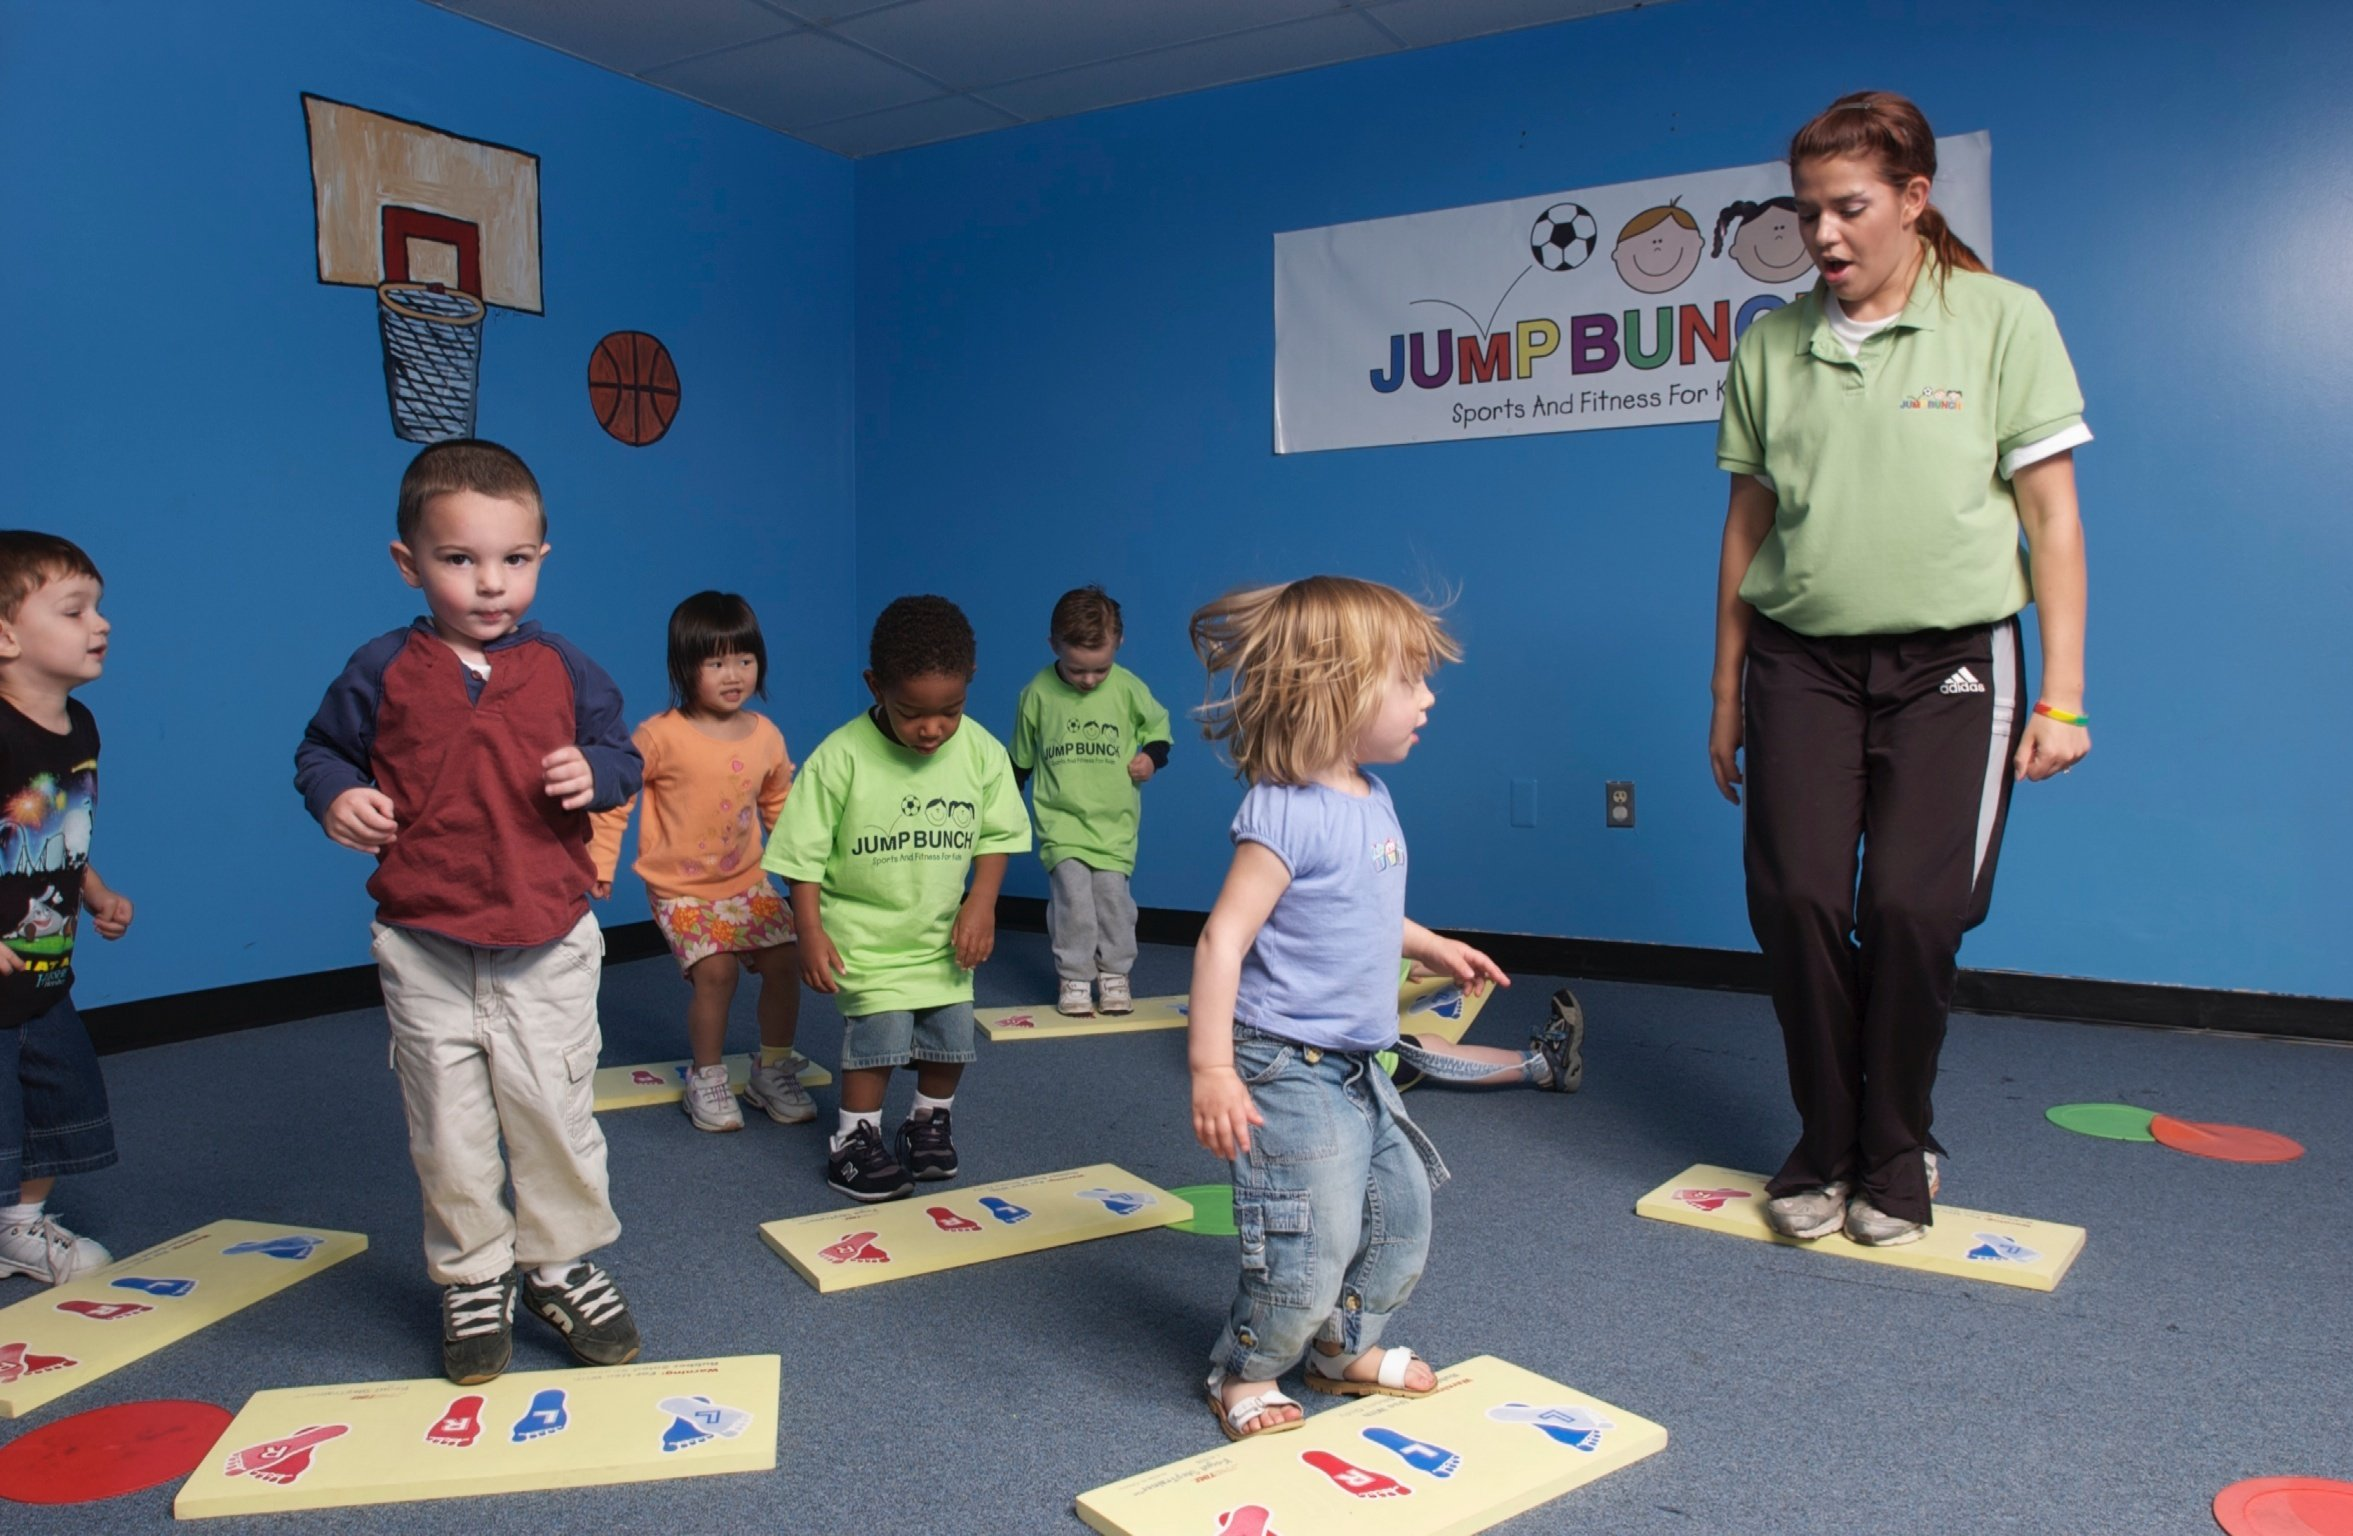 JumpBunch Columbus Ohio | A Friendly Introduction to Sports and Fitness!